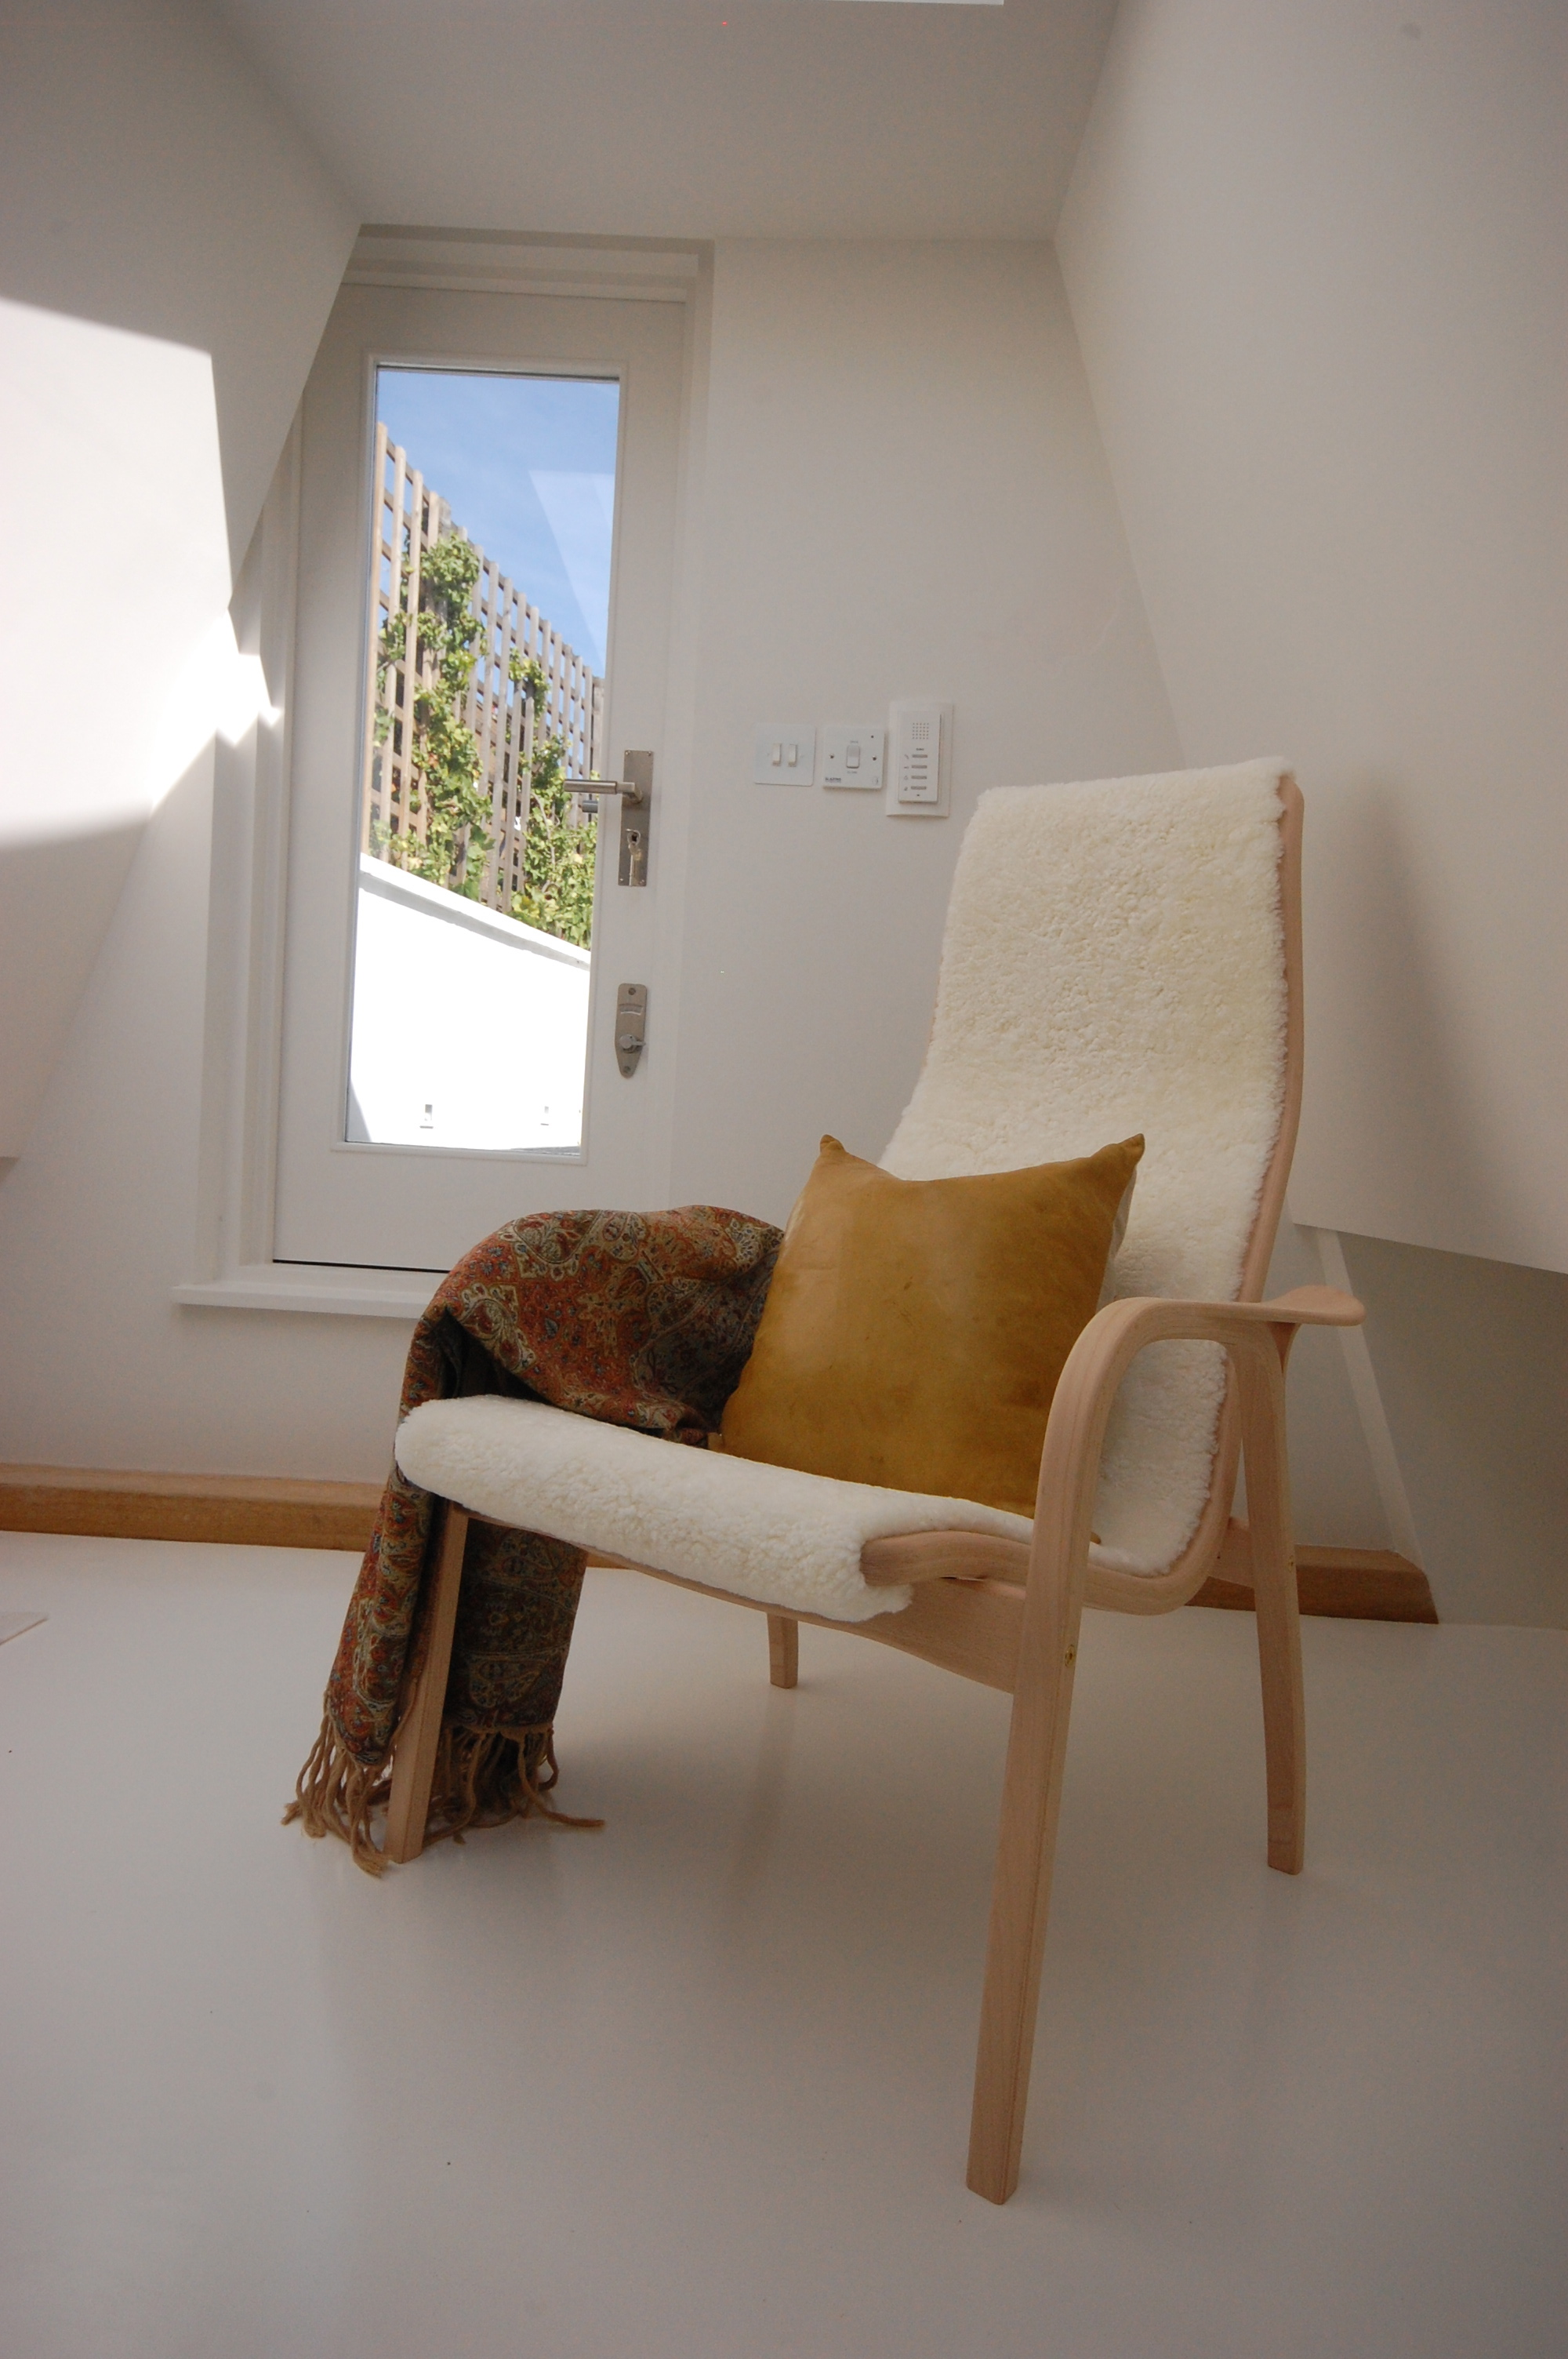 creativemass - mezzanine, roof terrace, glazing, light, mews house, London